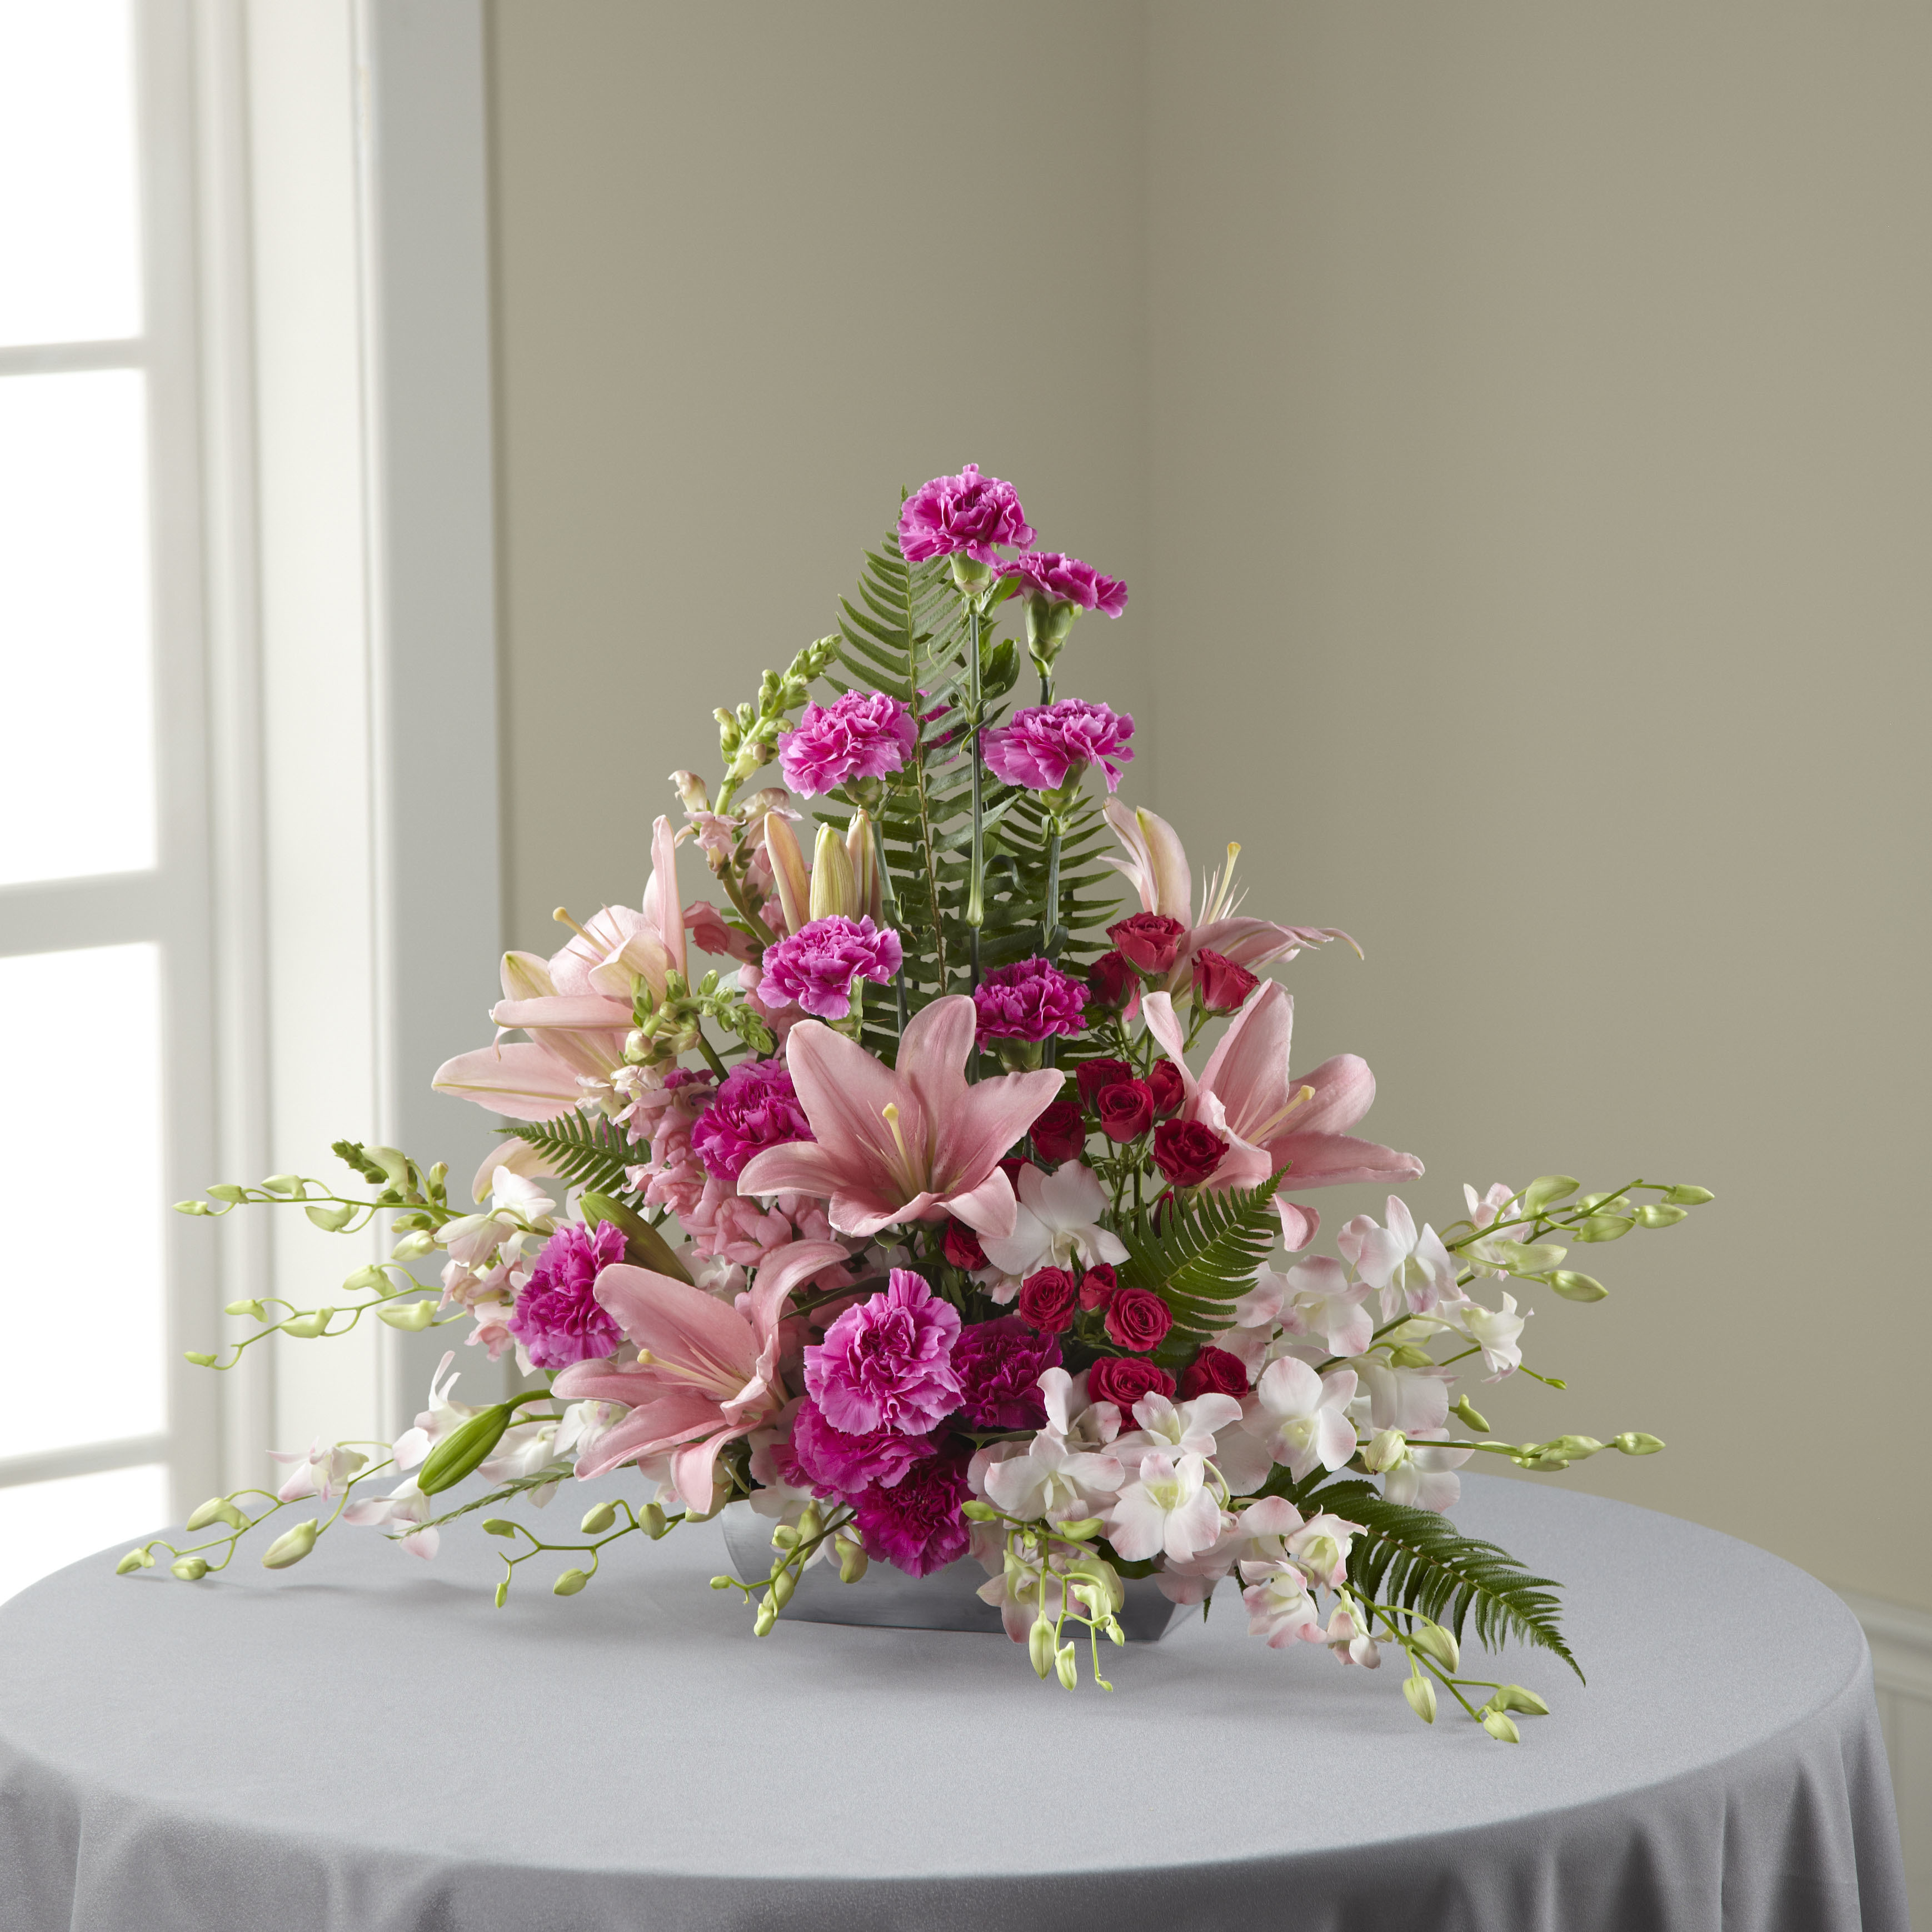 The ftd uplifting moments by tognoli gifts fresh flowers gift s15 4988 the ftd uplifting moments arrangement by tognoli gifts izmirmasajfo